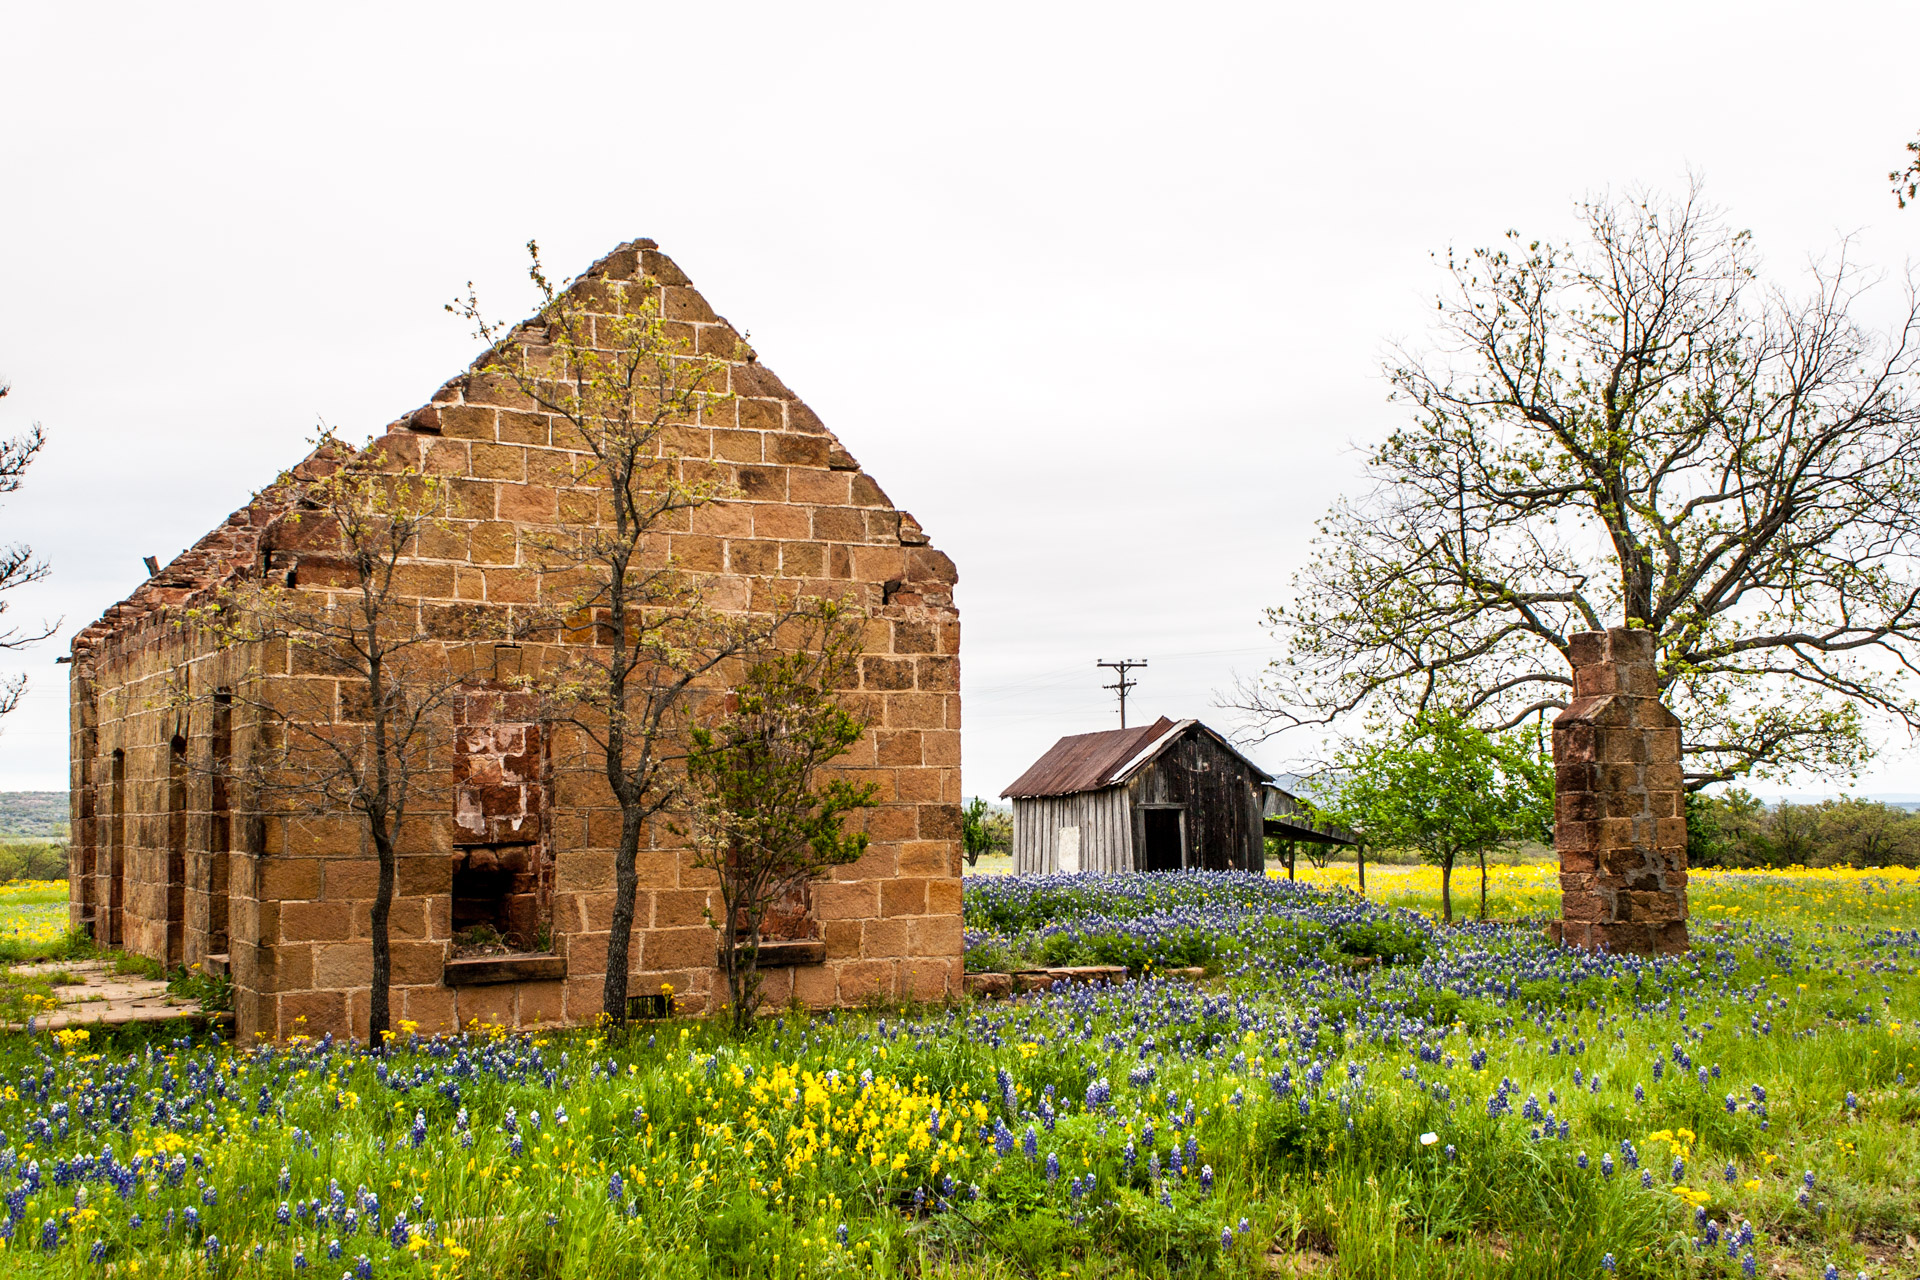 Pontotoc, Texas - A Stone Ruin With Bluebonnets (angle left)